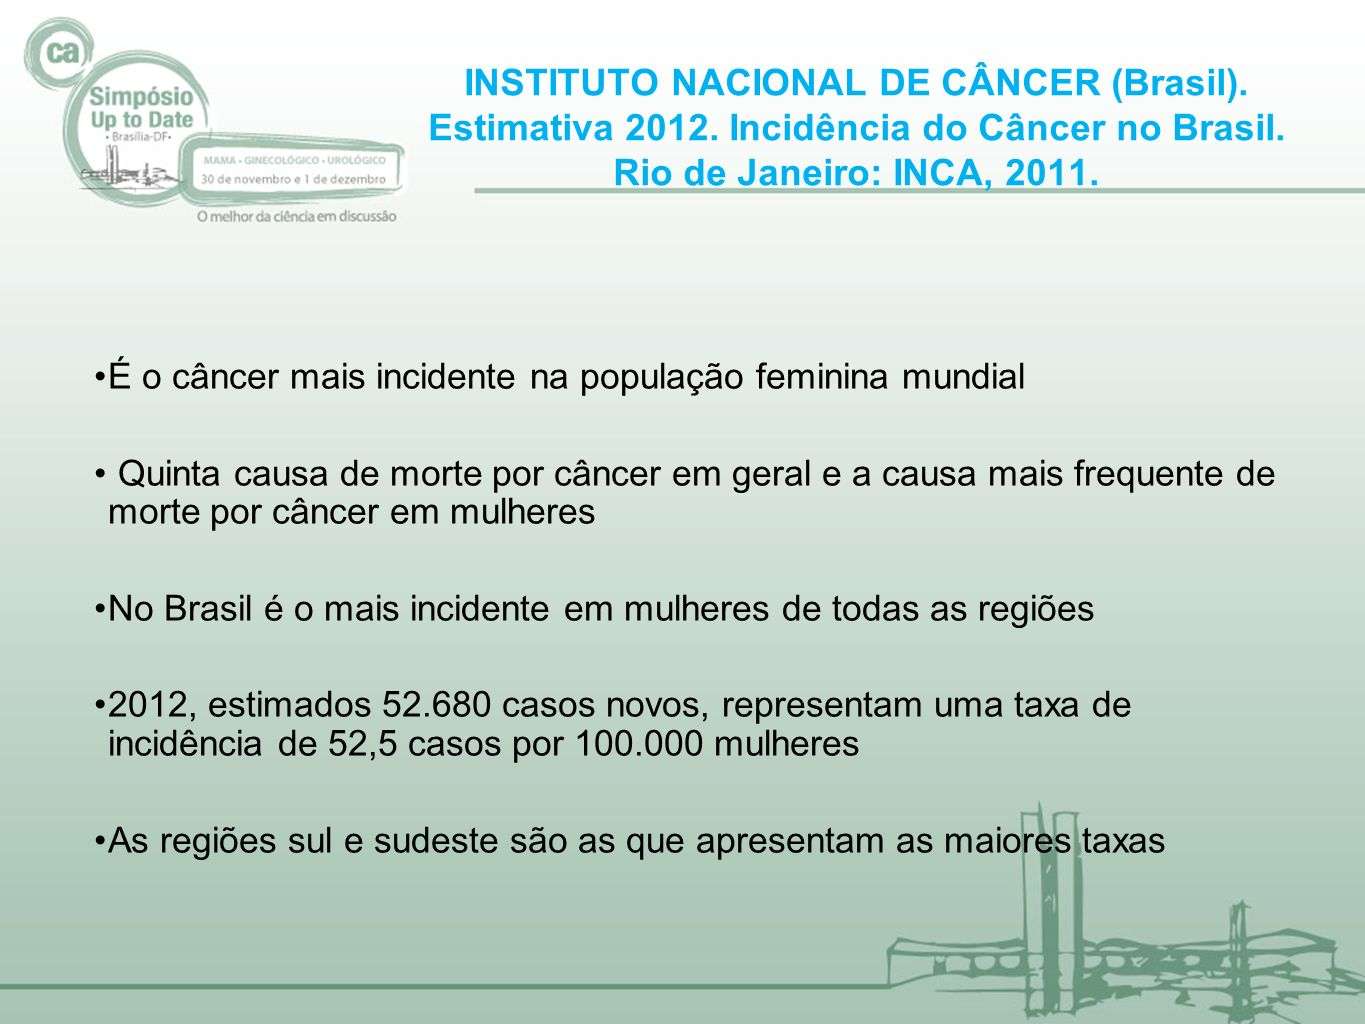 WORLD HEALTH ORGANIZATION.International Agency for Research on Cancer.